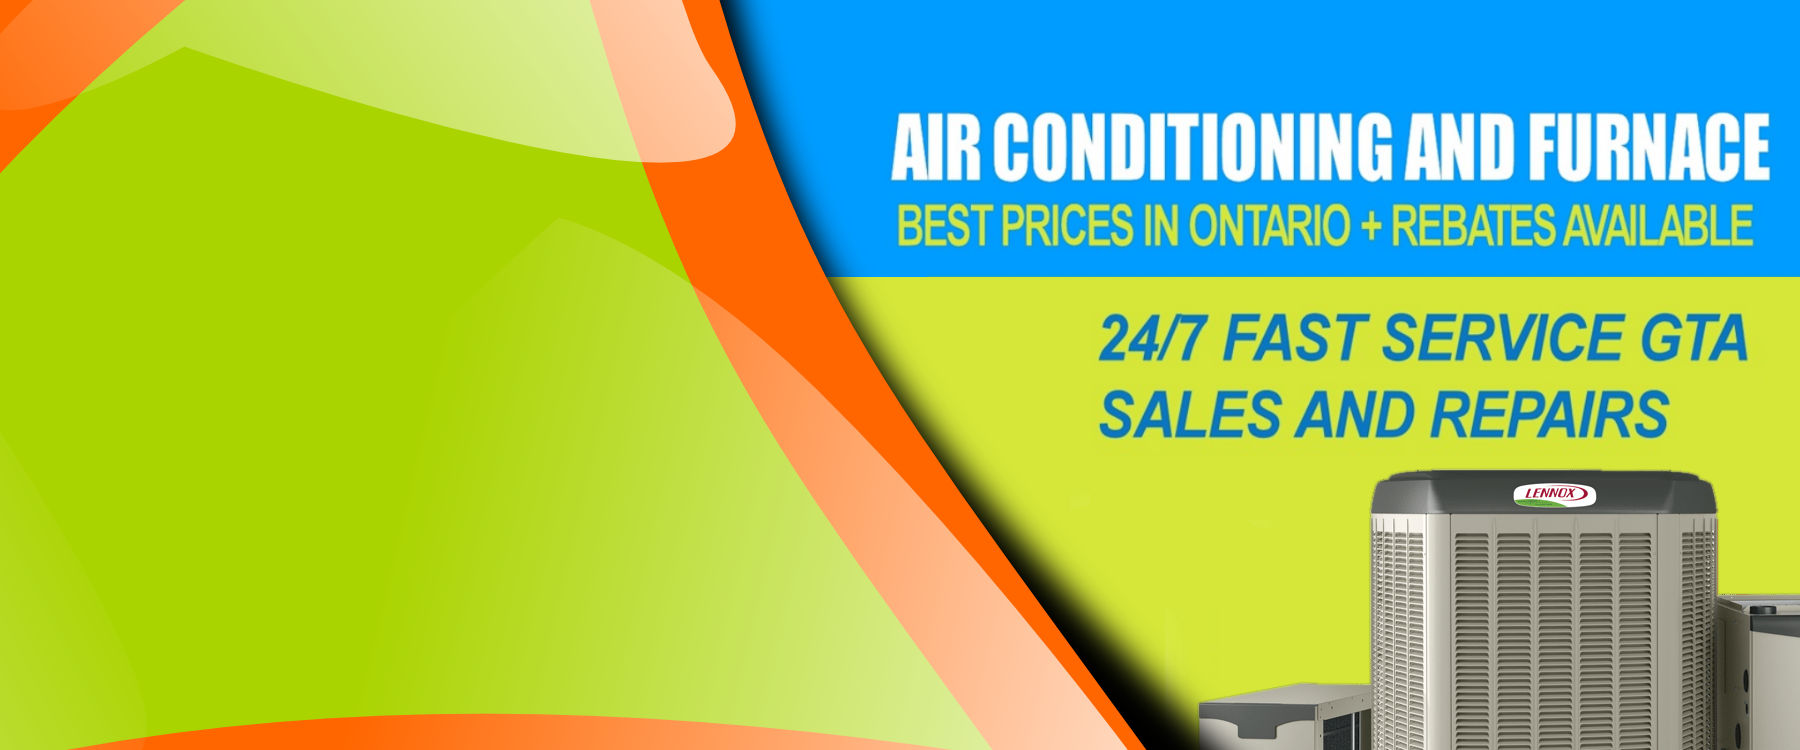 Home Air Conditioning Amp Furnace Dealers Amp Repairs